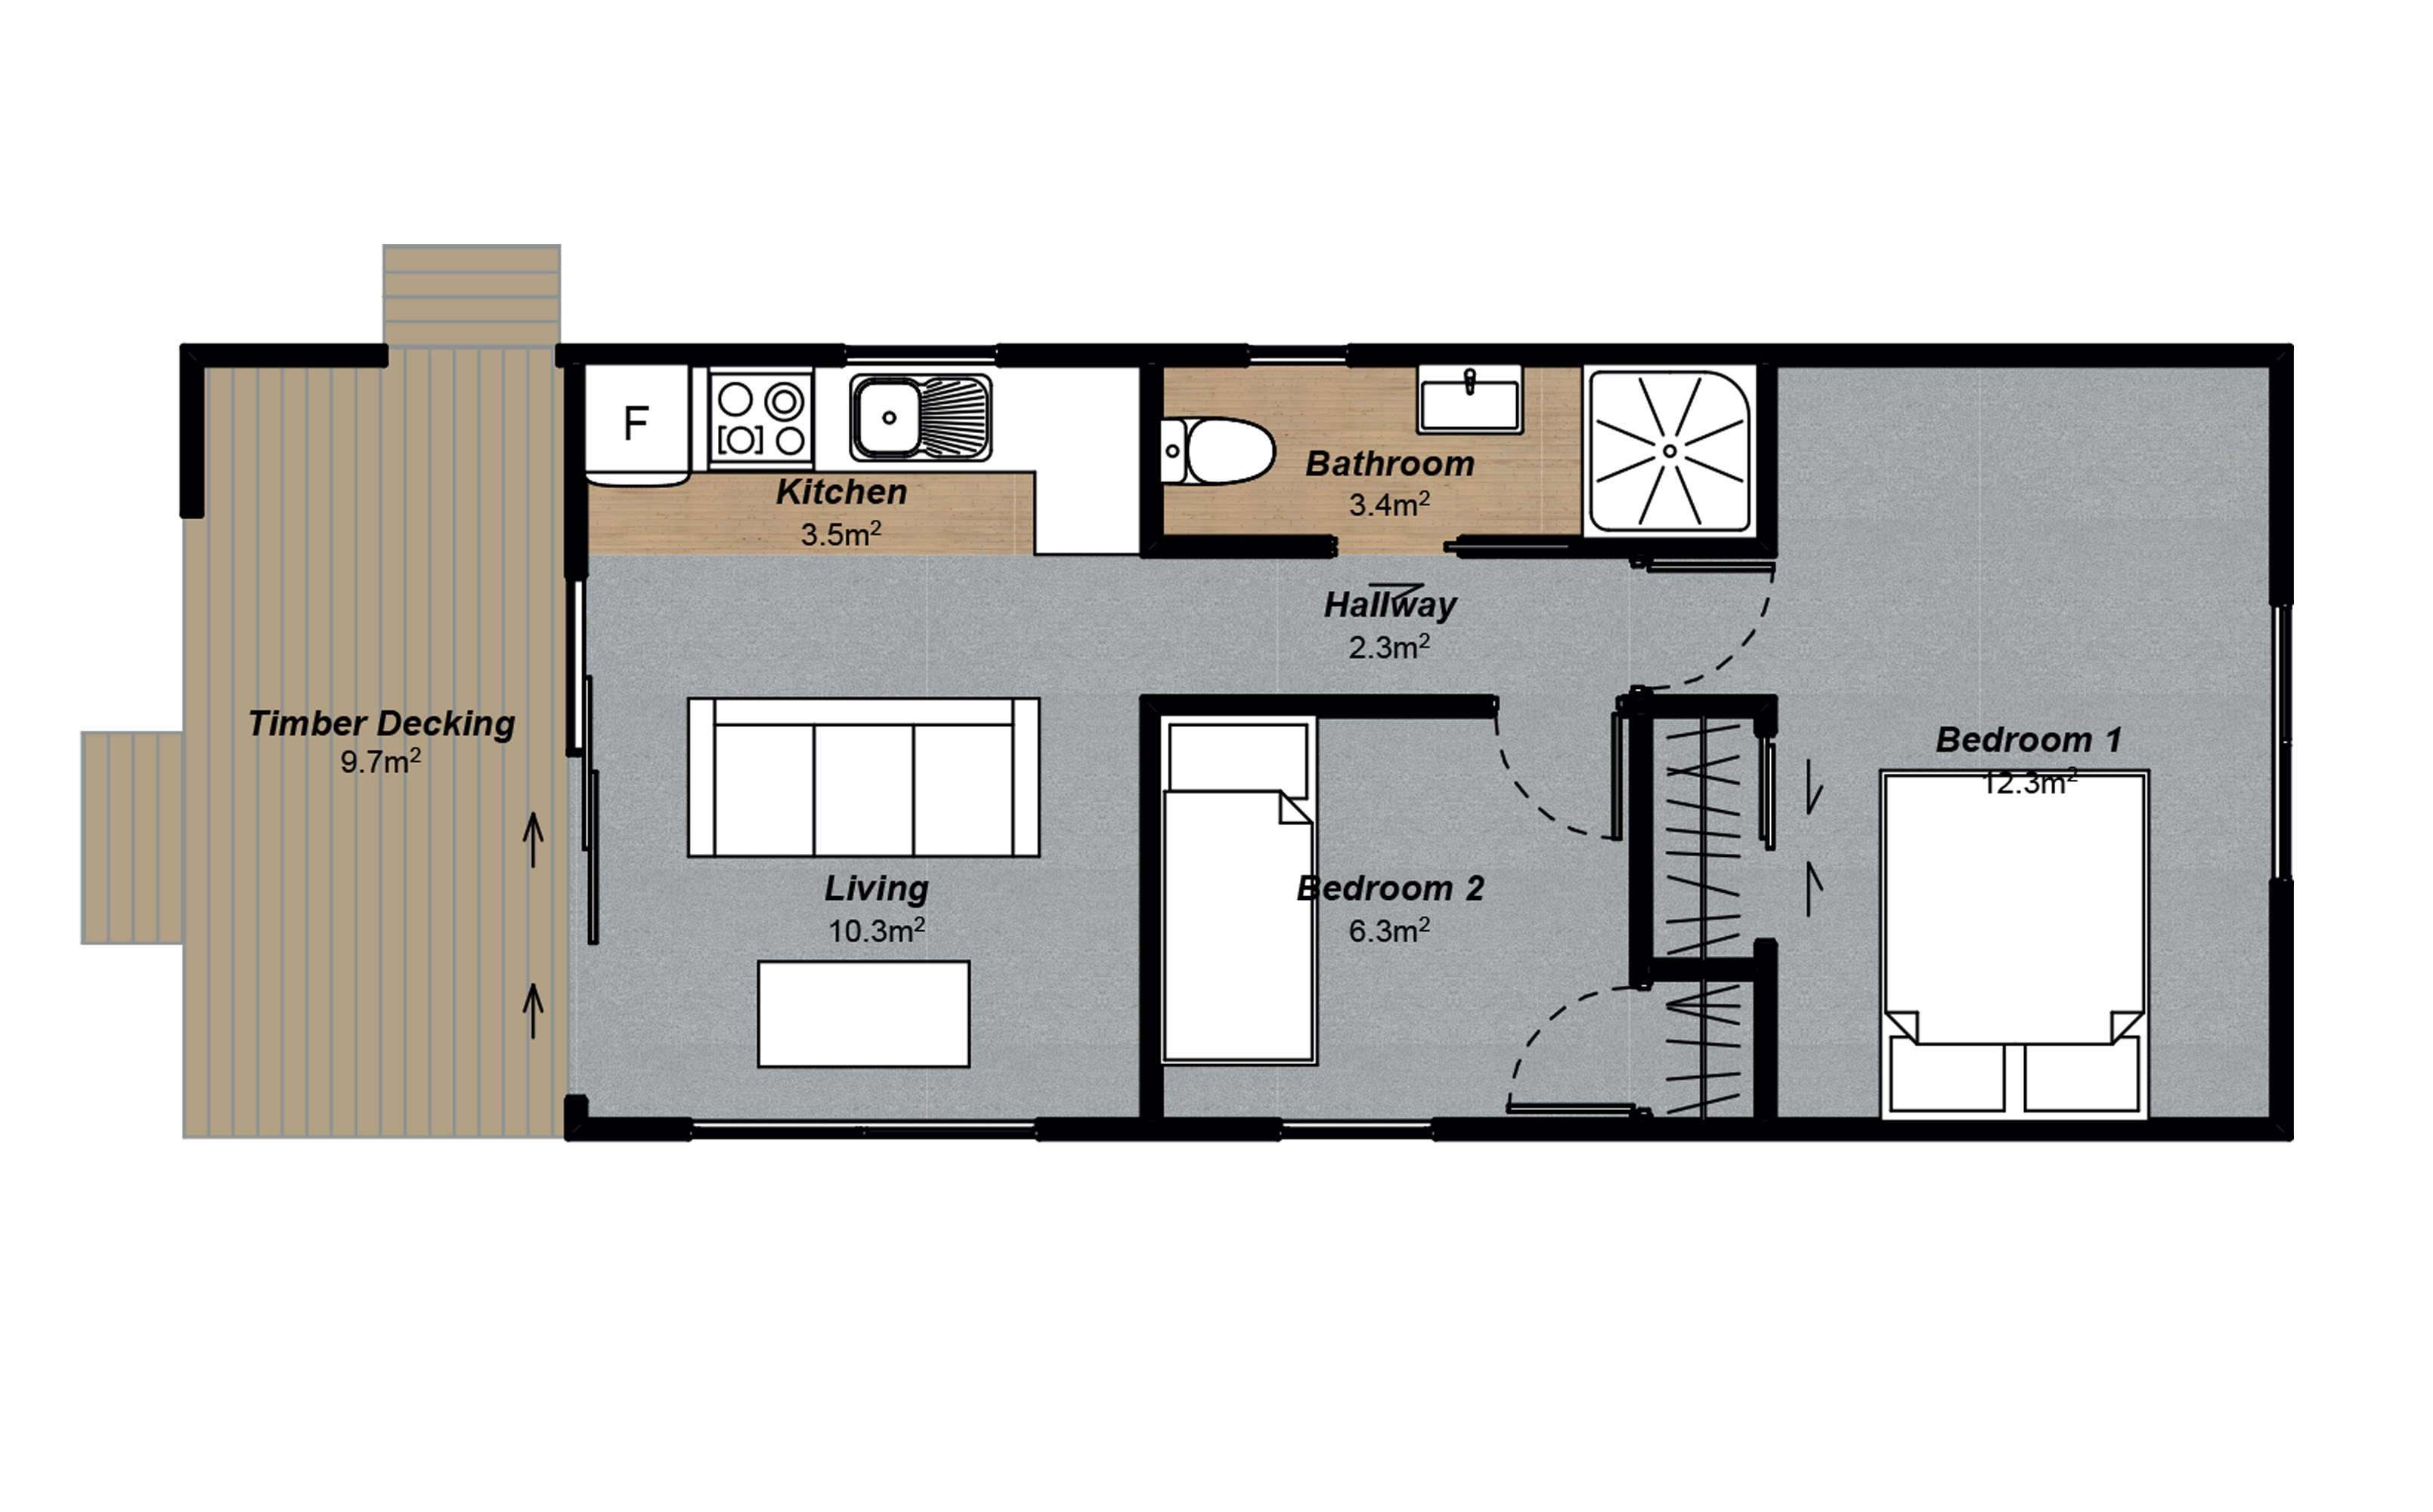 4 Bedroom Cabin Plans Genius 2 Bedroom Prefabricated Houses